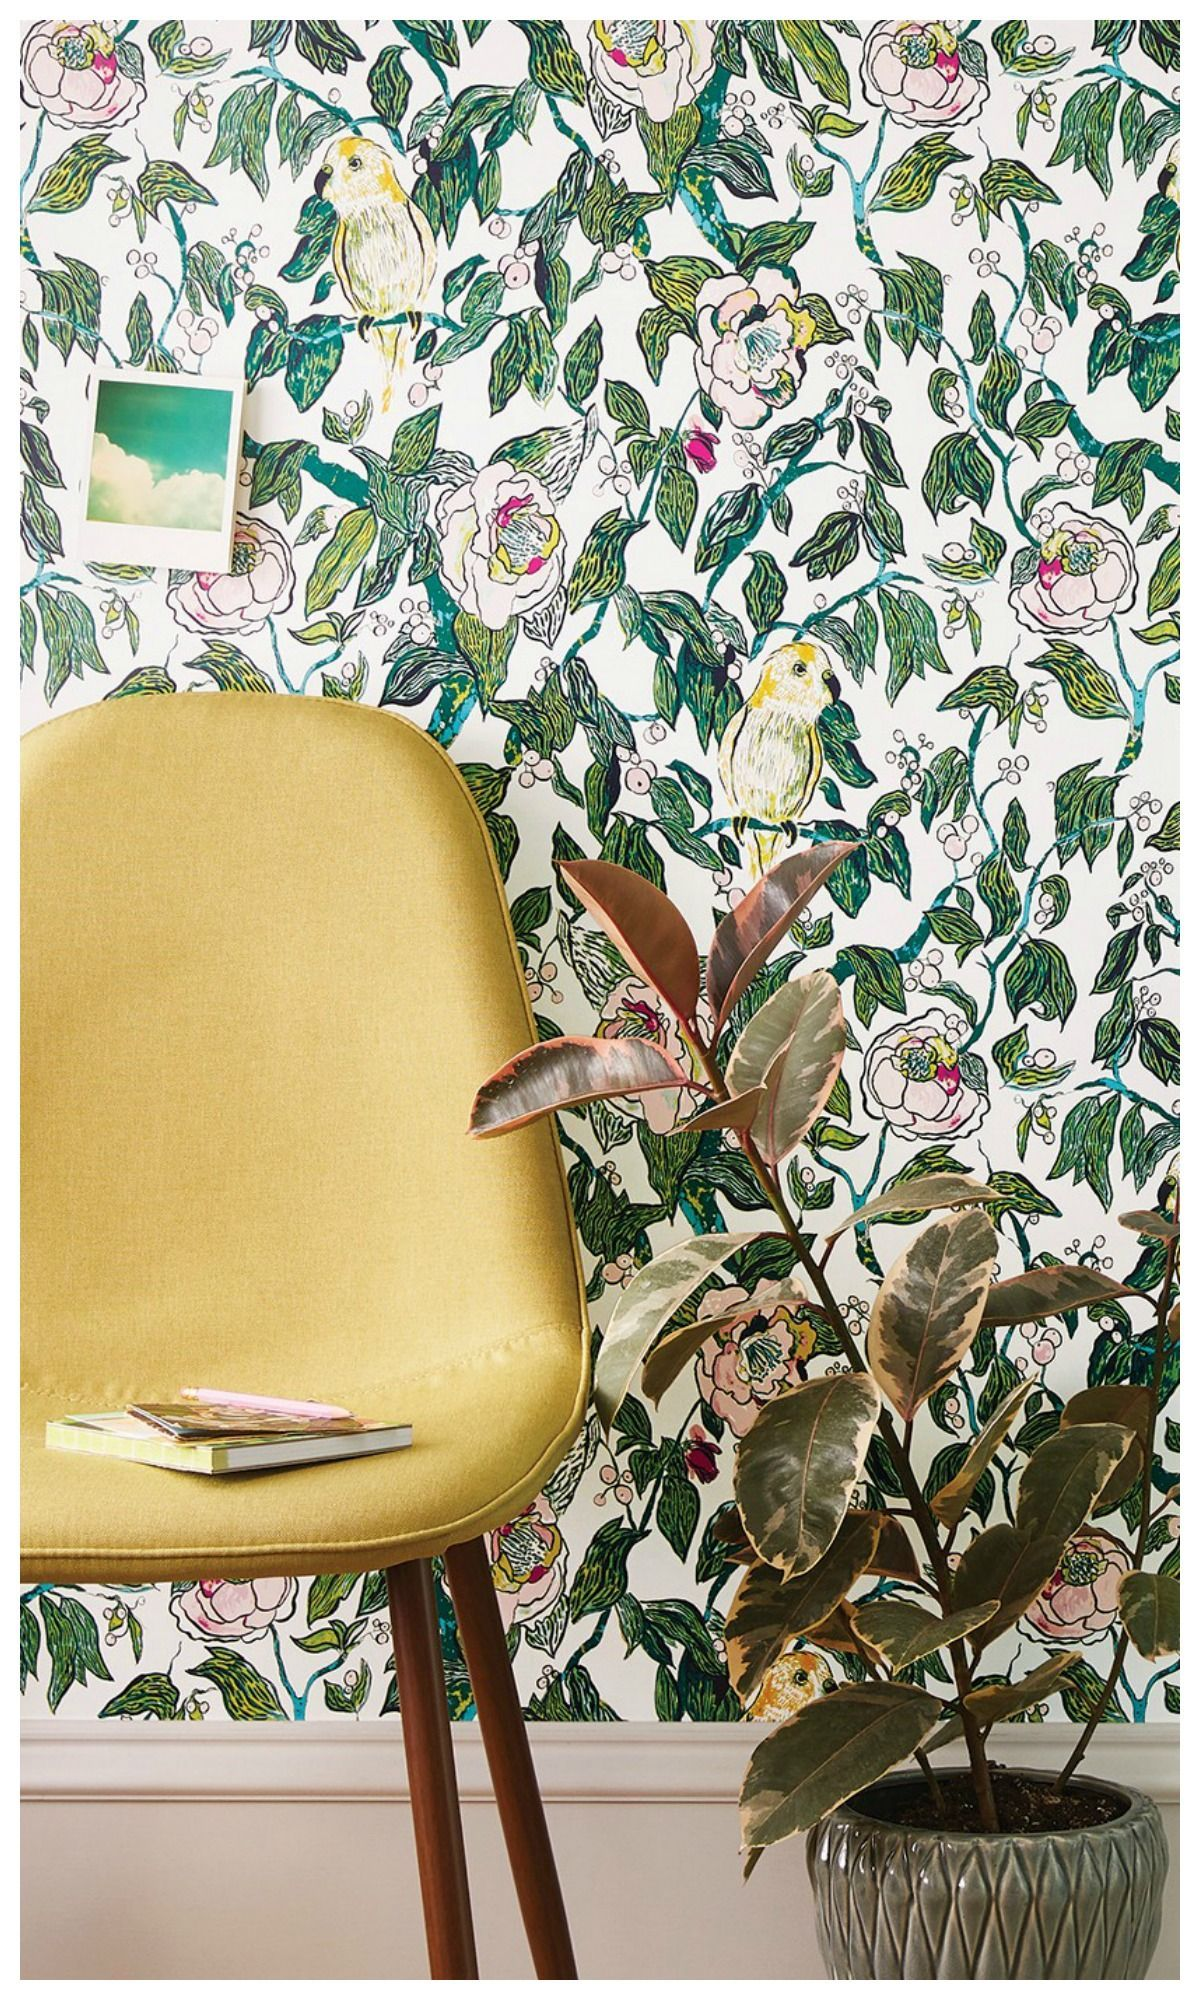 Obsessing Over This New Line Opalhouse Canary Floral Peel Stick Removable Wallpaper Livingroom Affili Modern Floral Wallpaper Home Decor Target Home Decor